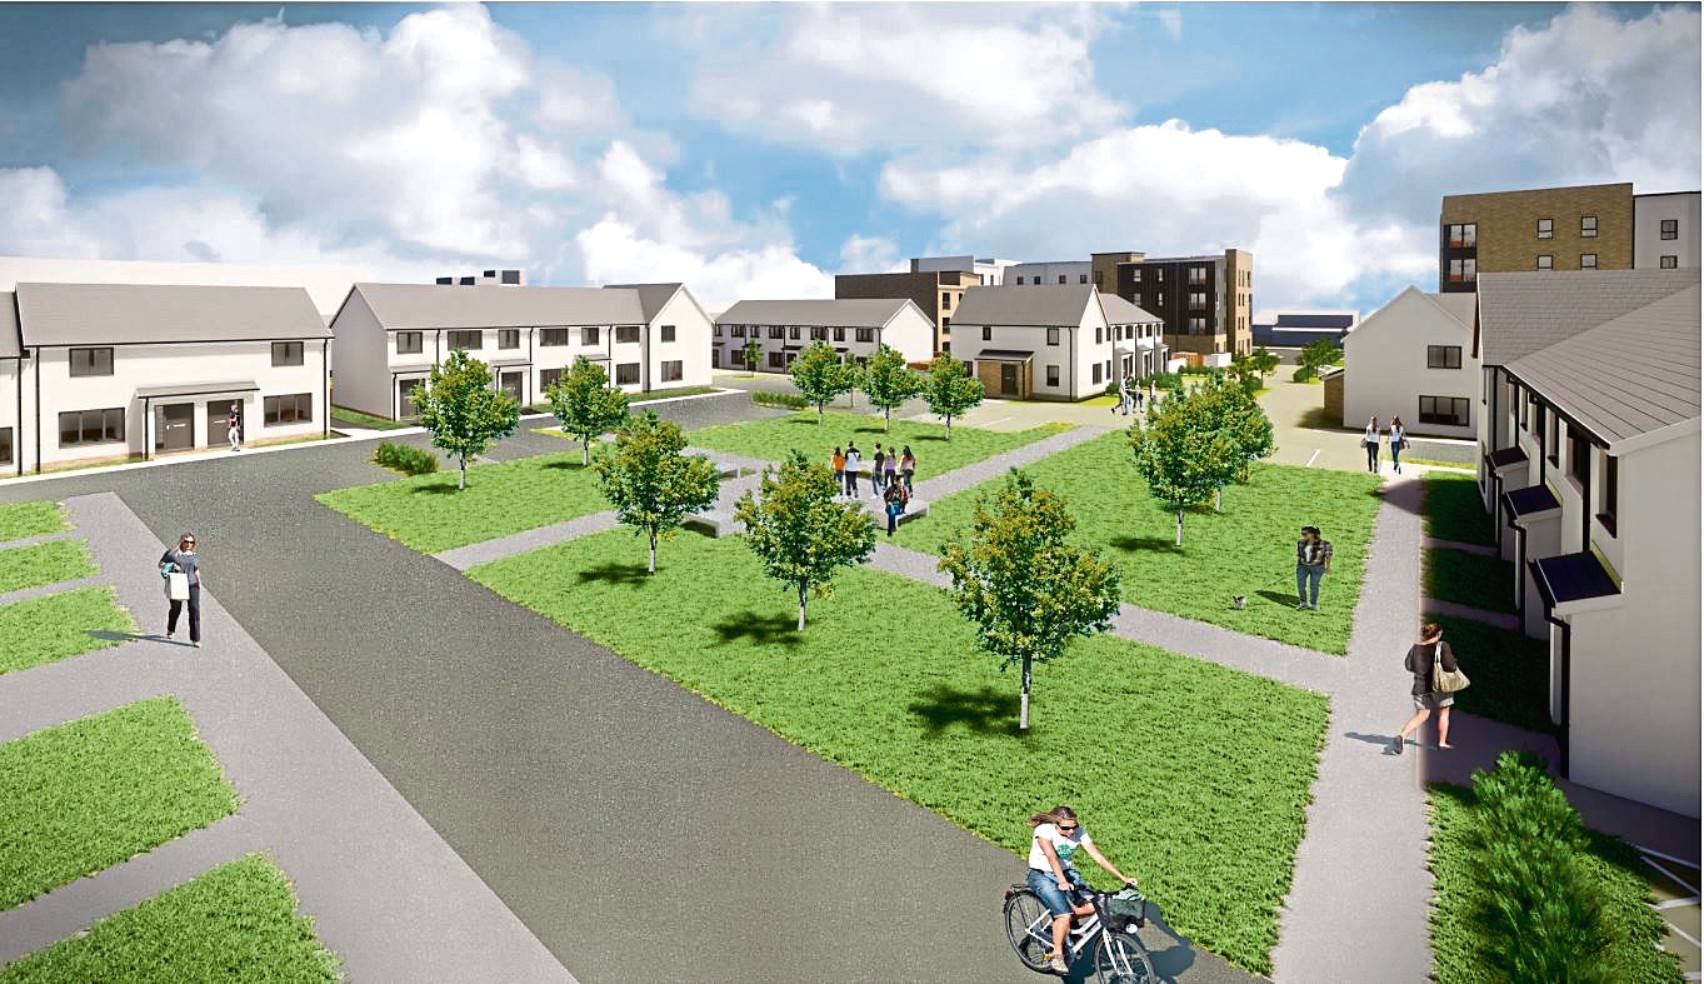 An artist's impression of the plans for the housing complex